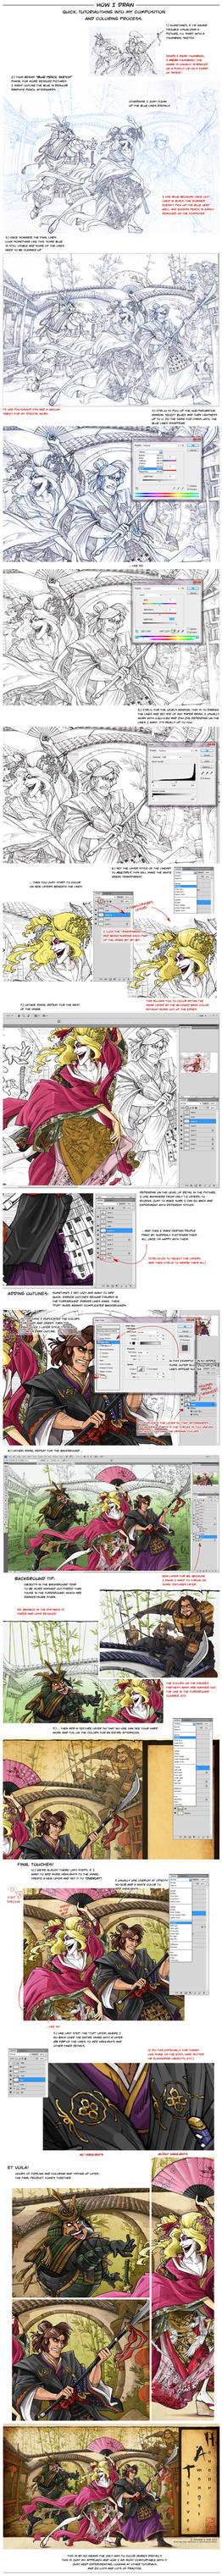 Quickie Tutorial: Color and Composition by Quarter-Virus